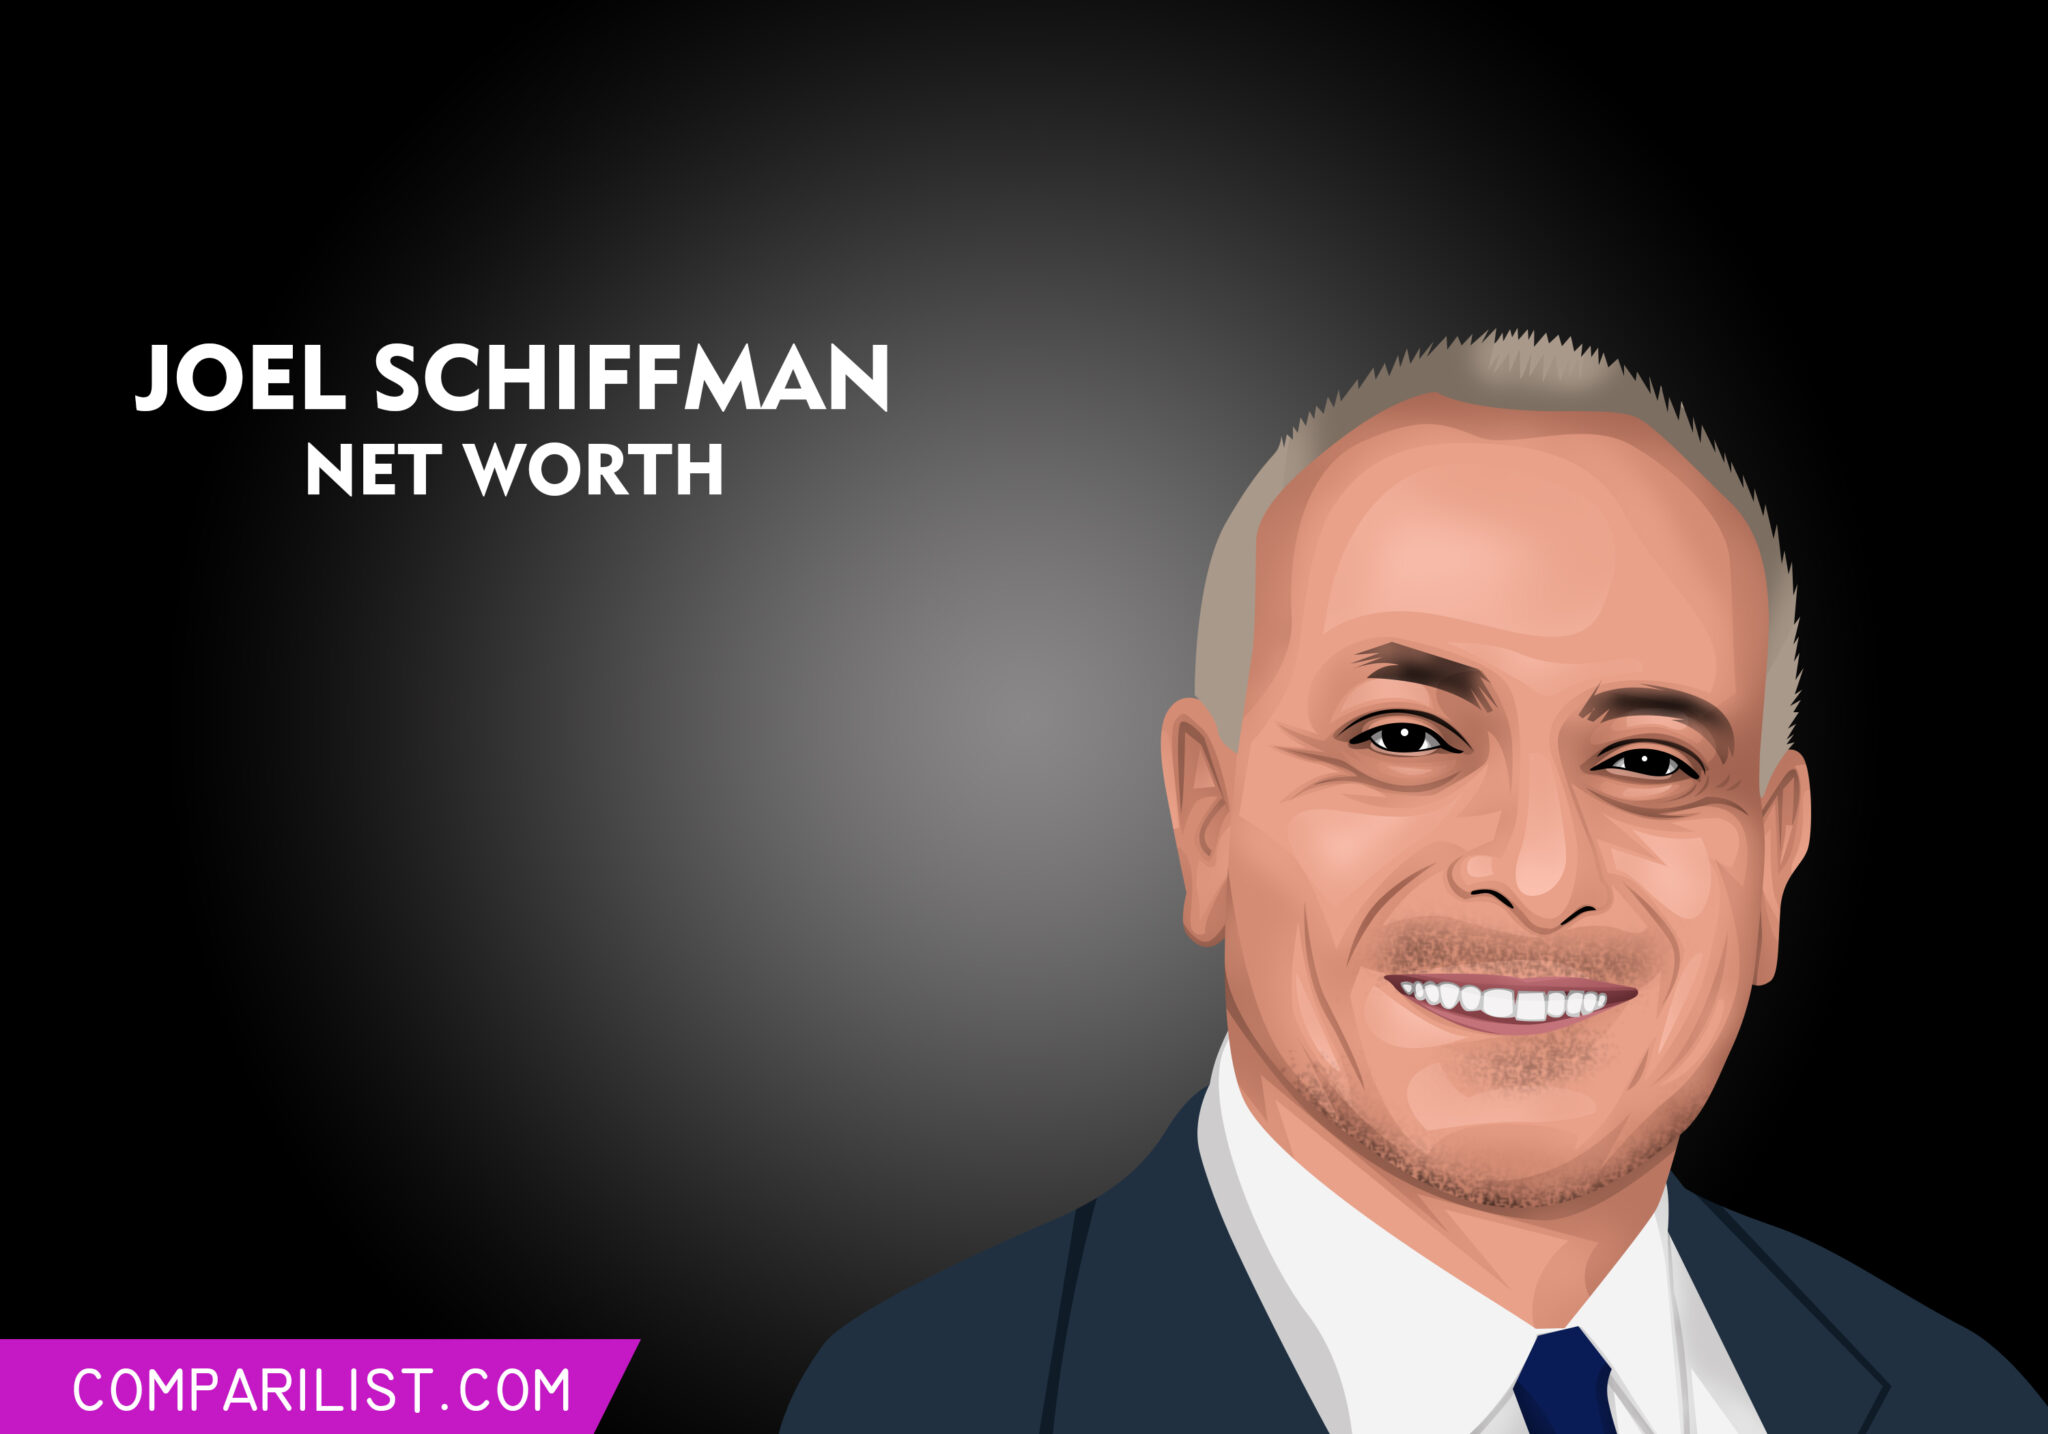 Joel Schiffman Net Worth 2019 Sources Of Income Salary And More